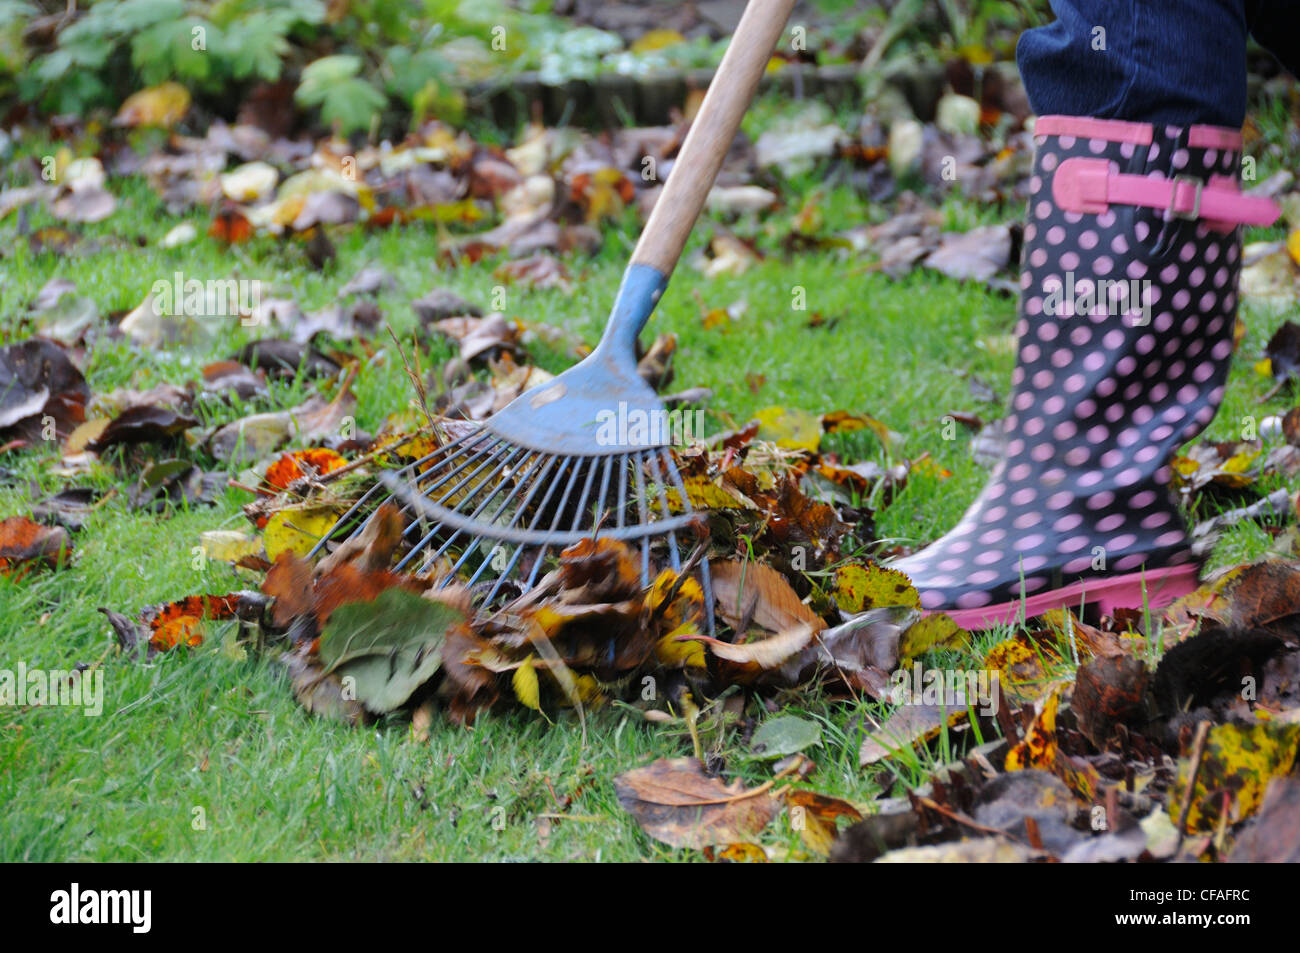 Raking leaves off lawn - Stock Image